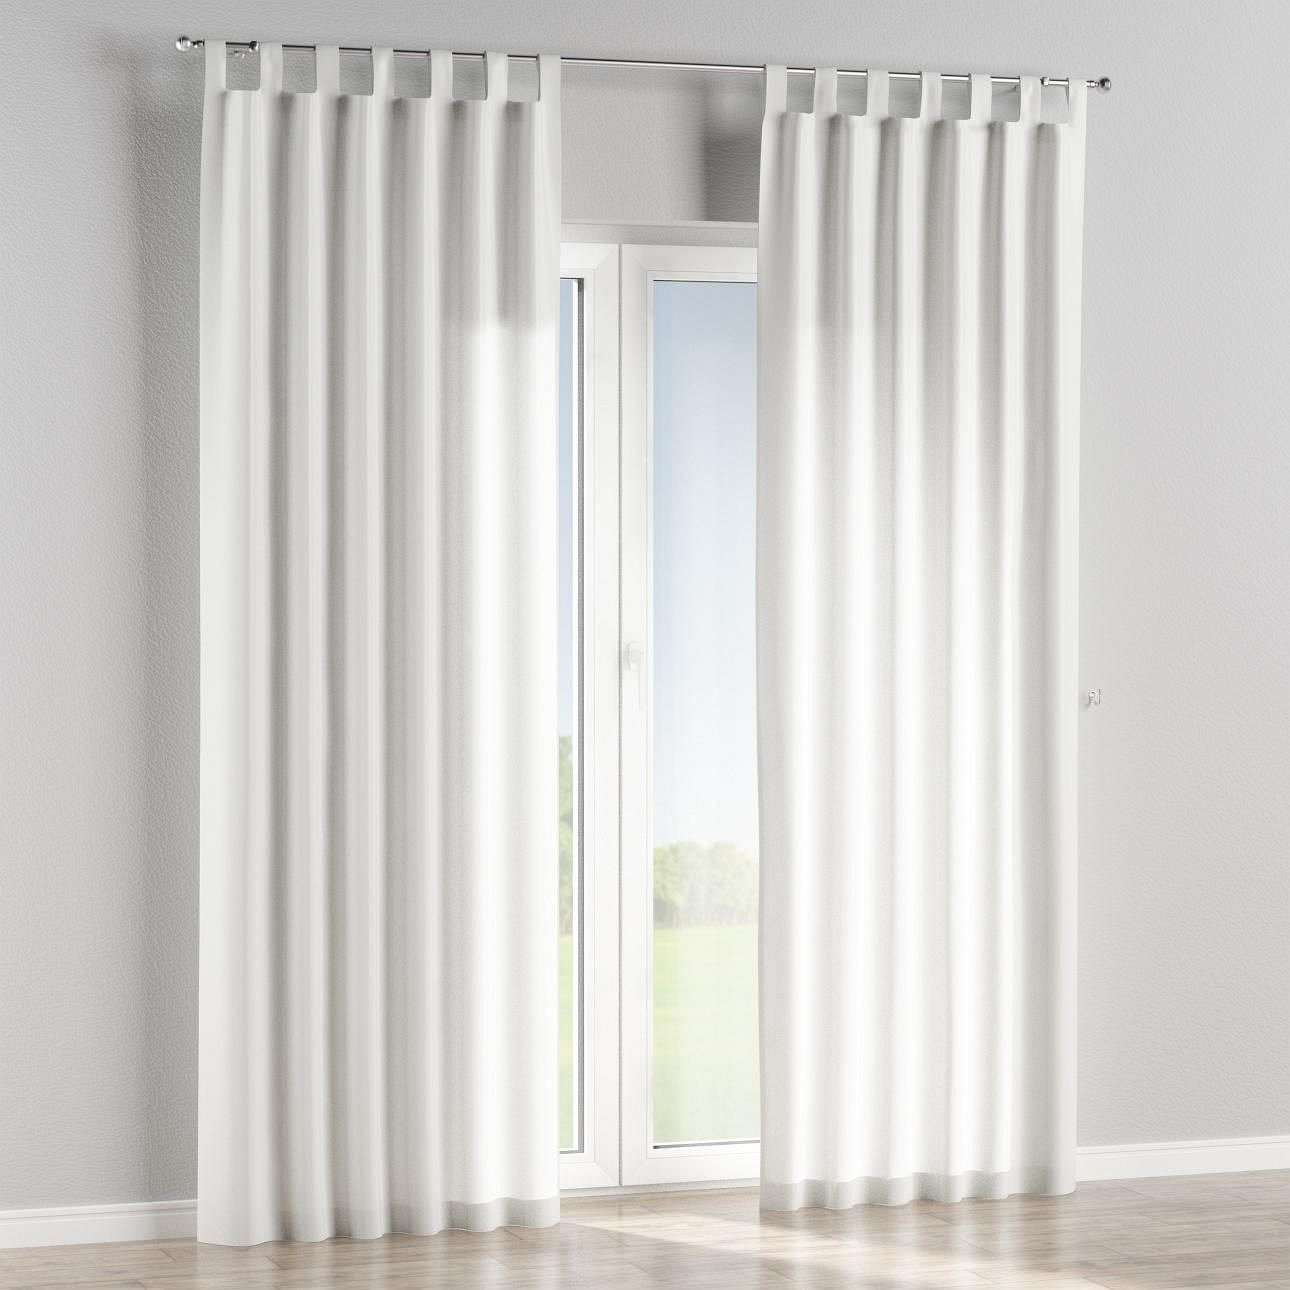 Tab top lined curtains in collection Fleur , fabric: 137-25